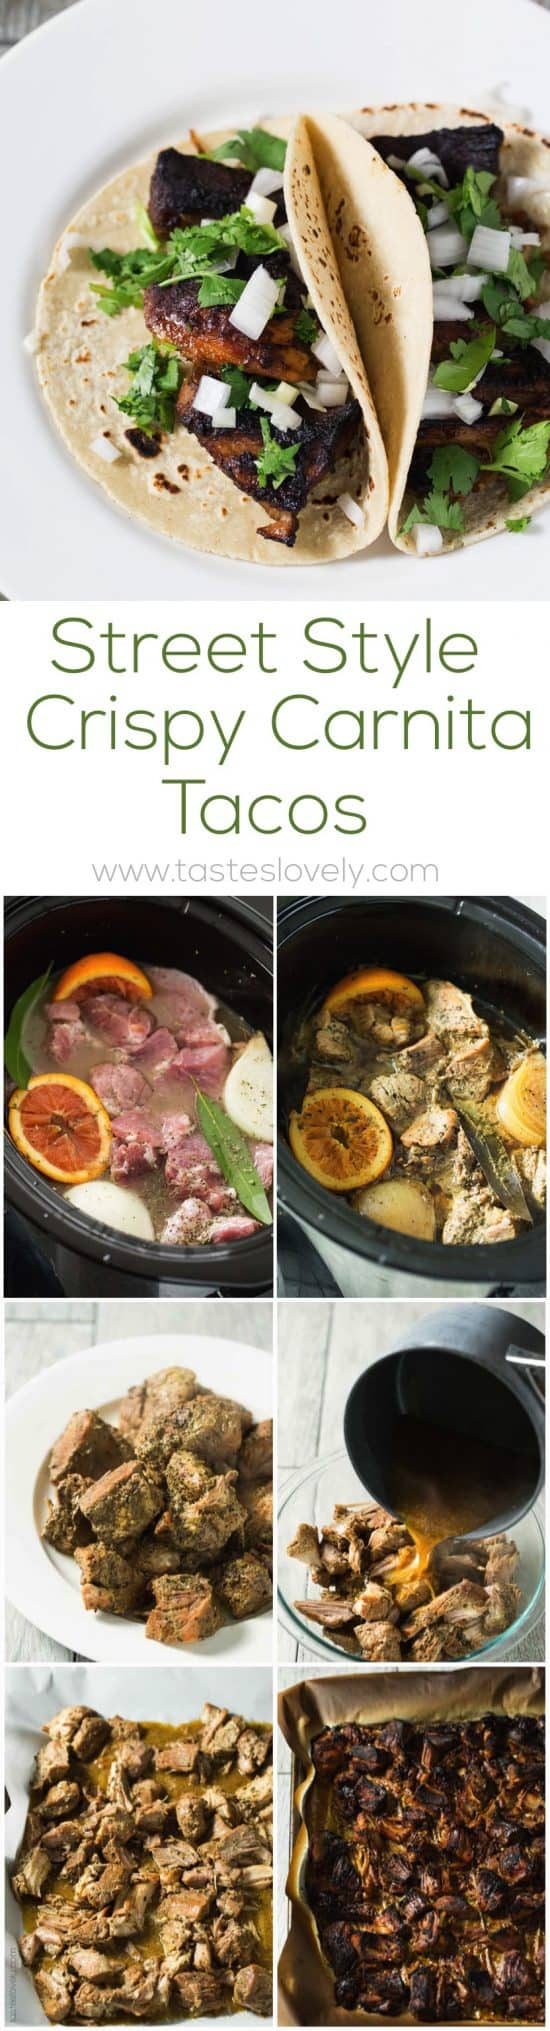 Street Style Crispy Carnitas Tacos - started in the slow cooker, then broiled in the oven to get them crispy